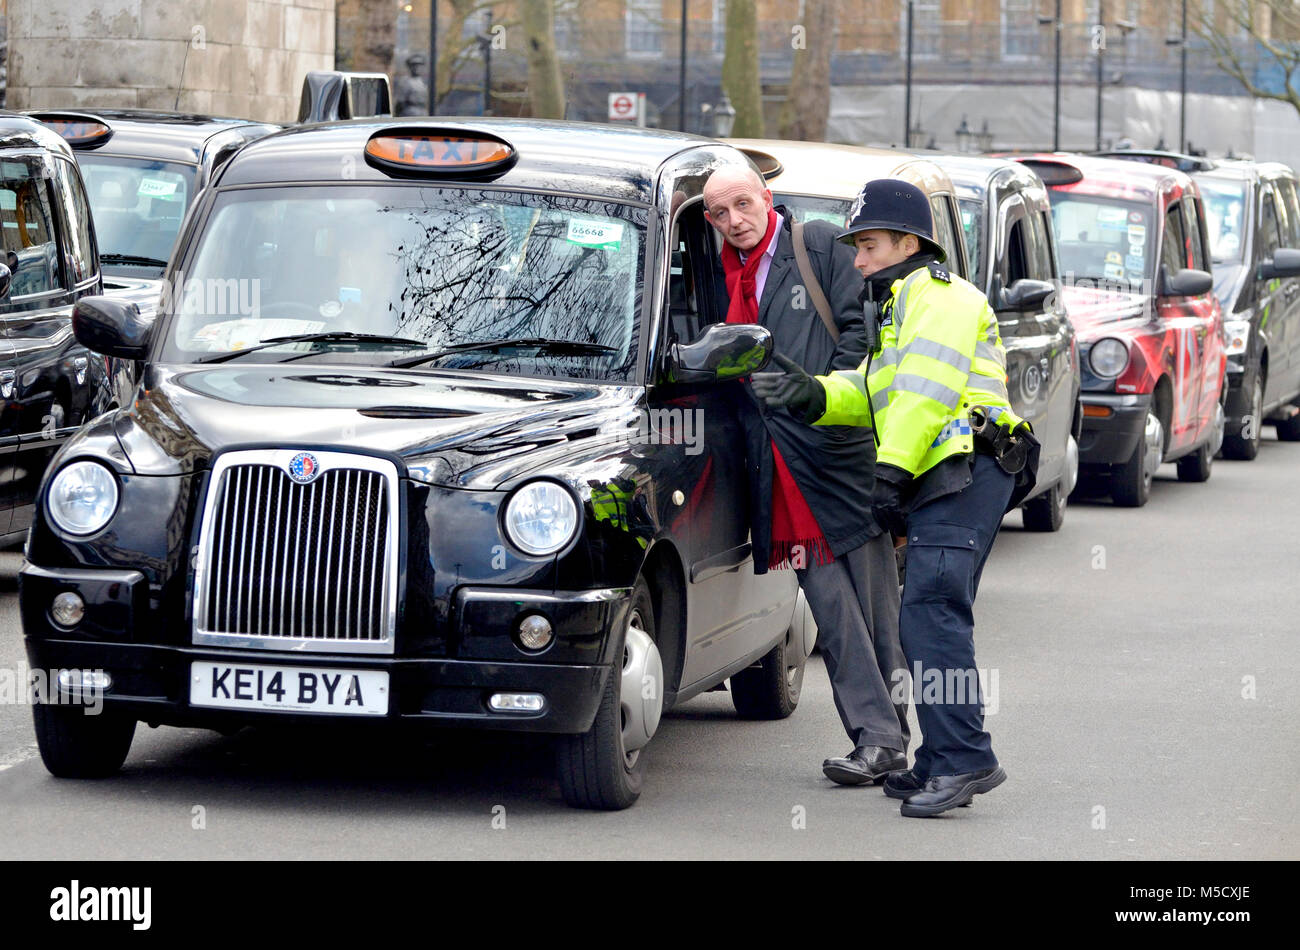 London, England, UK. Police and taxi drivers during a protest against the Uber taxi app Stock Photo